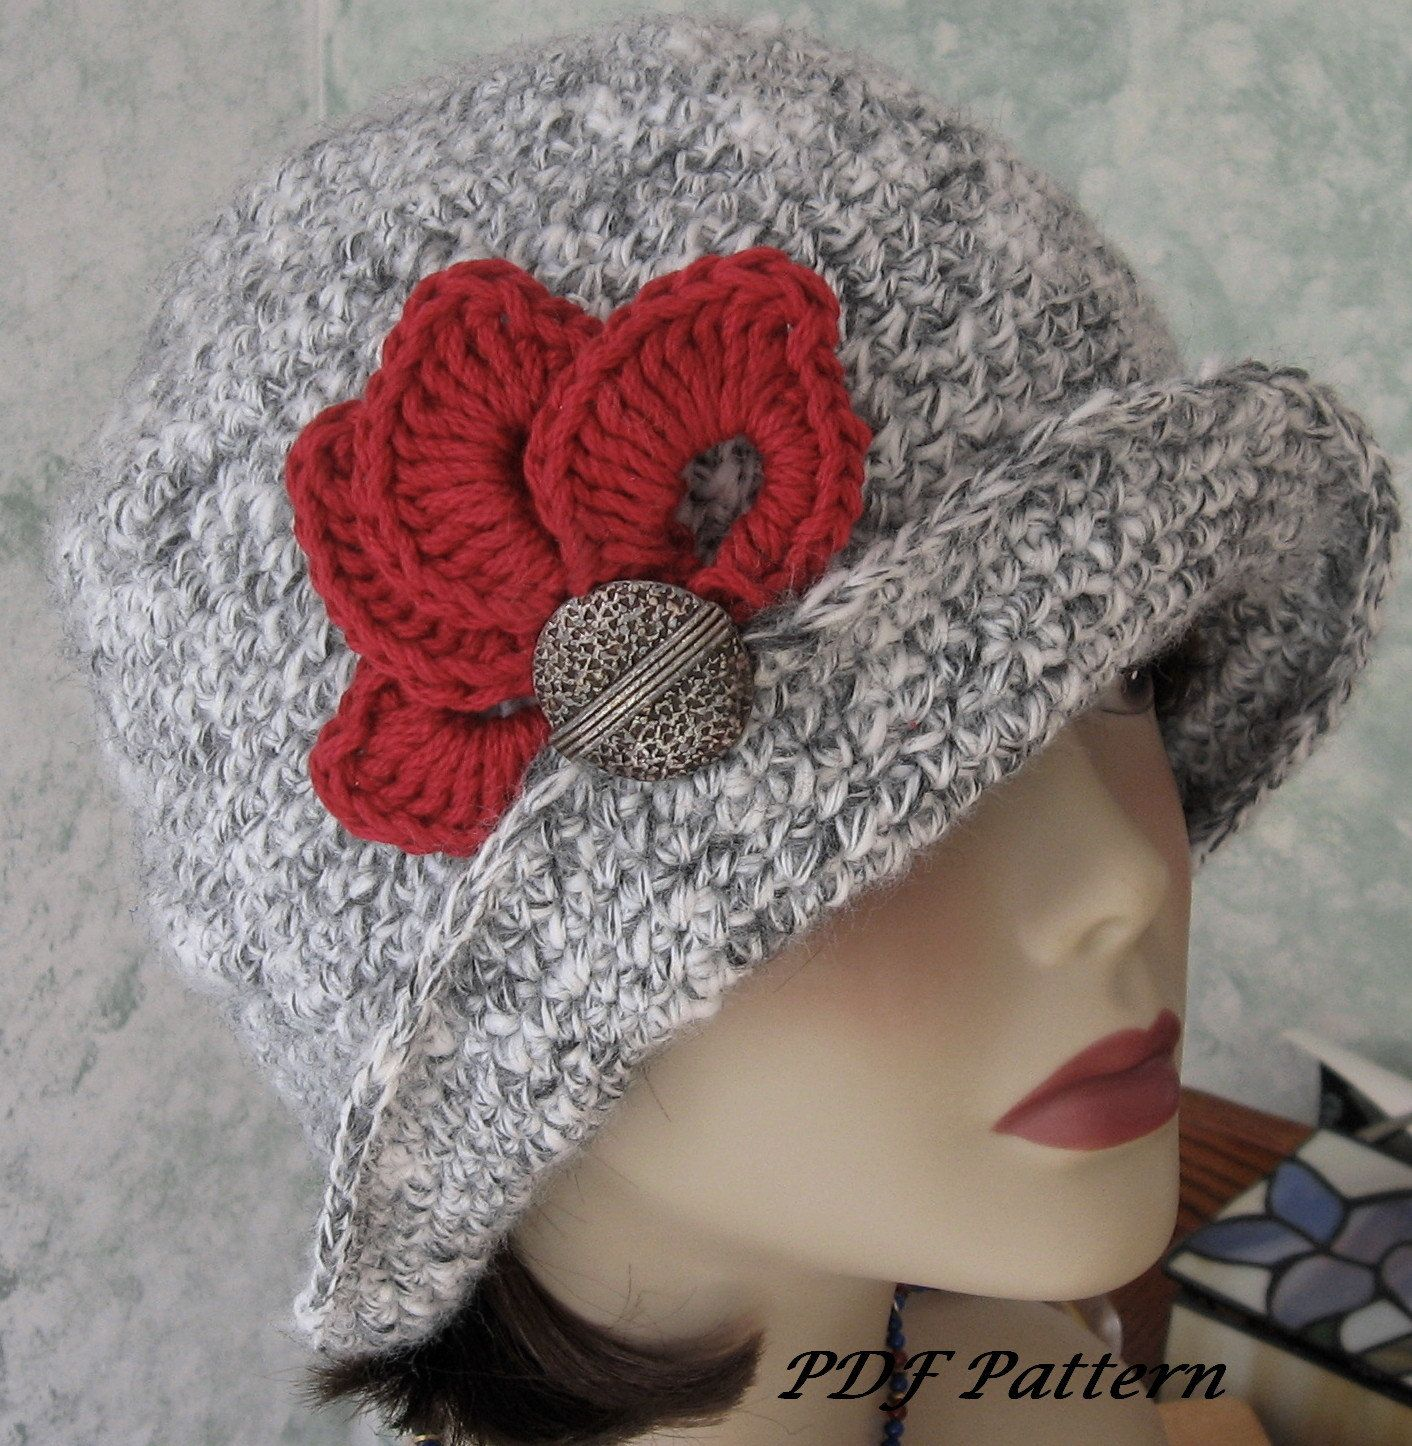 Crochet hat pattern flapper style with brim petal trim and back crochet hat pattern flapper style with brim petal trim and back pleats pdf resell finished bankloansurffo Gallery